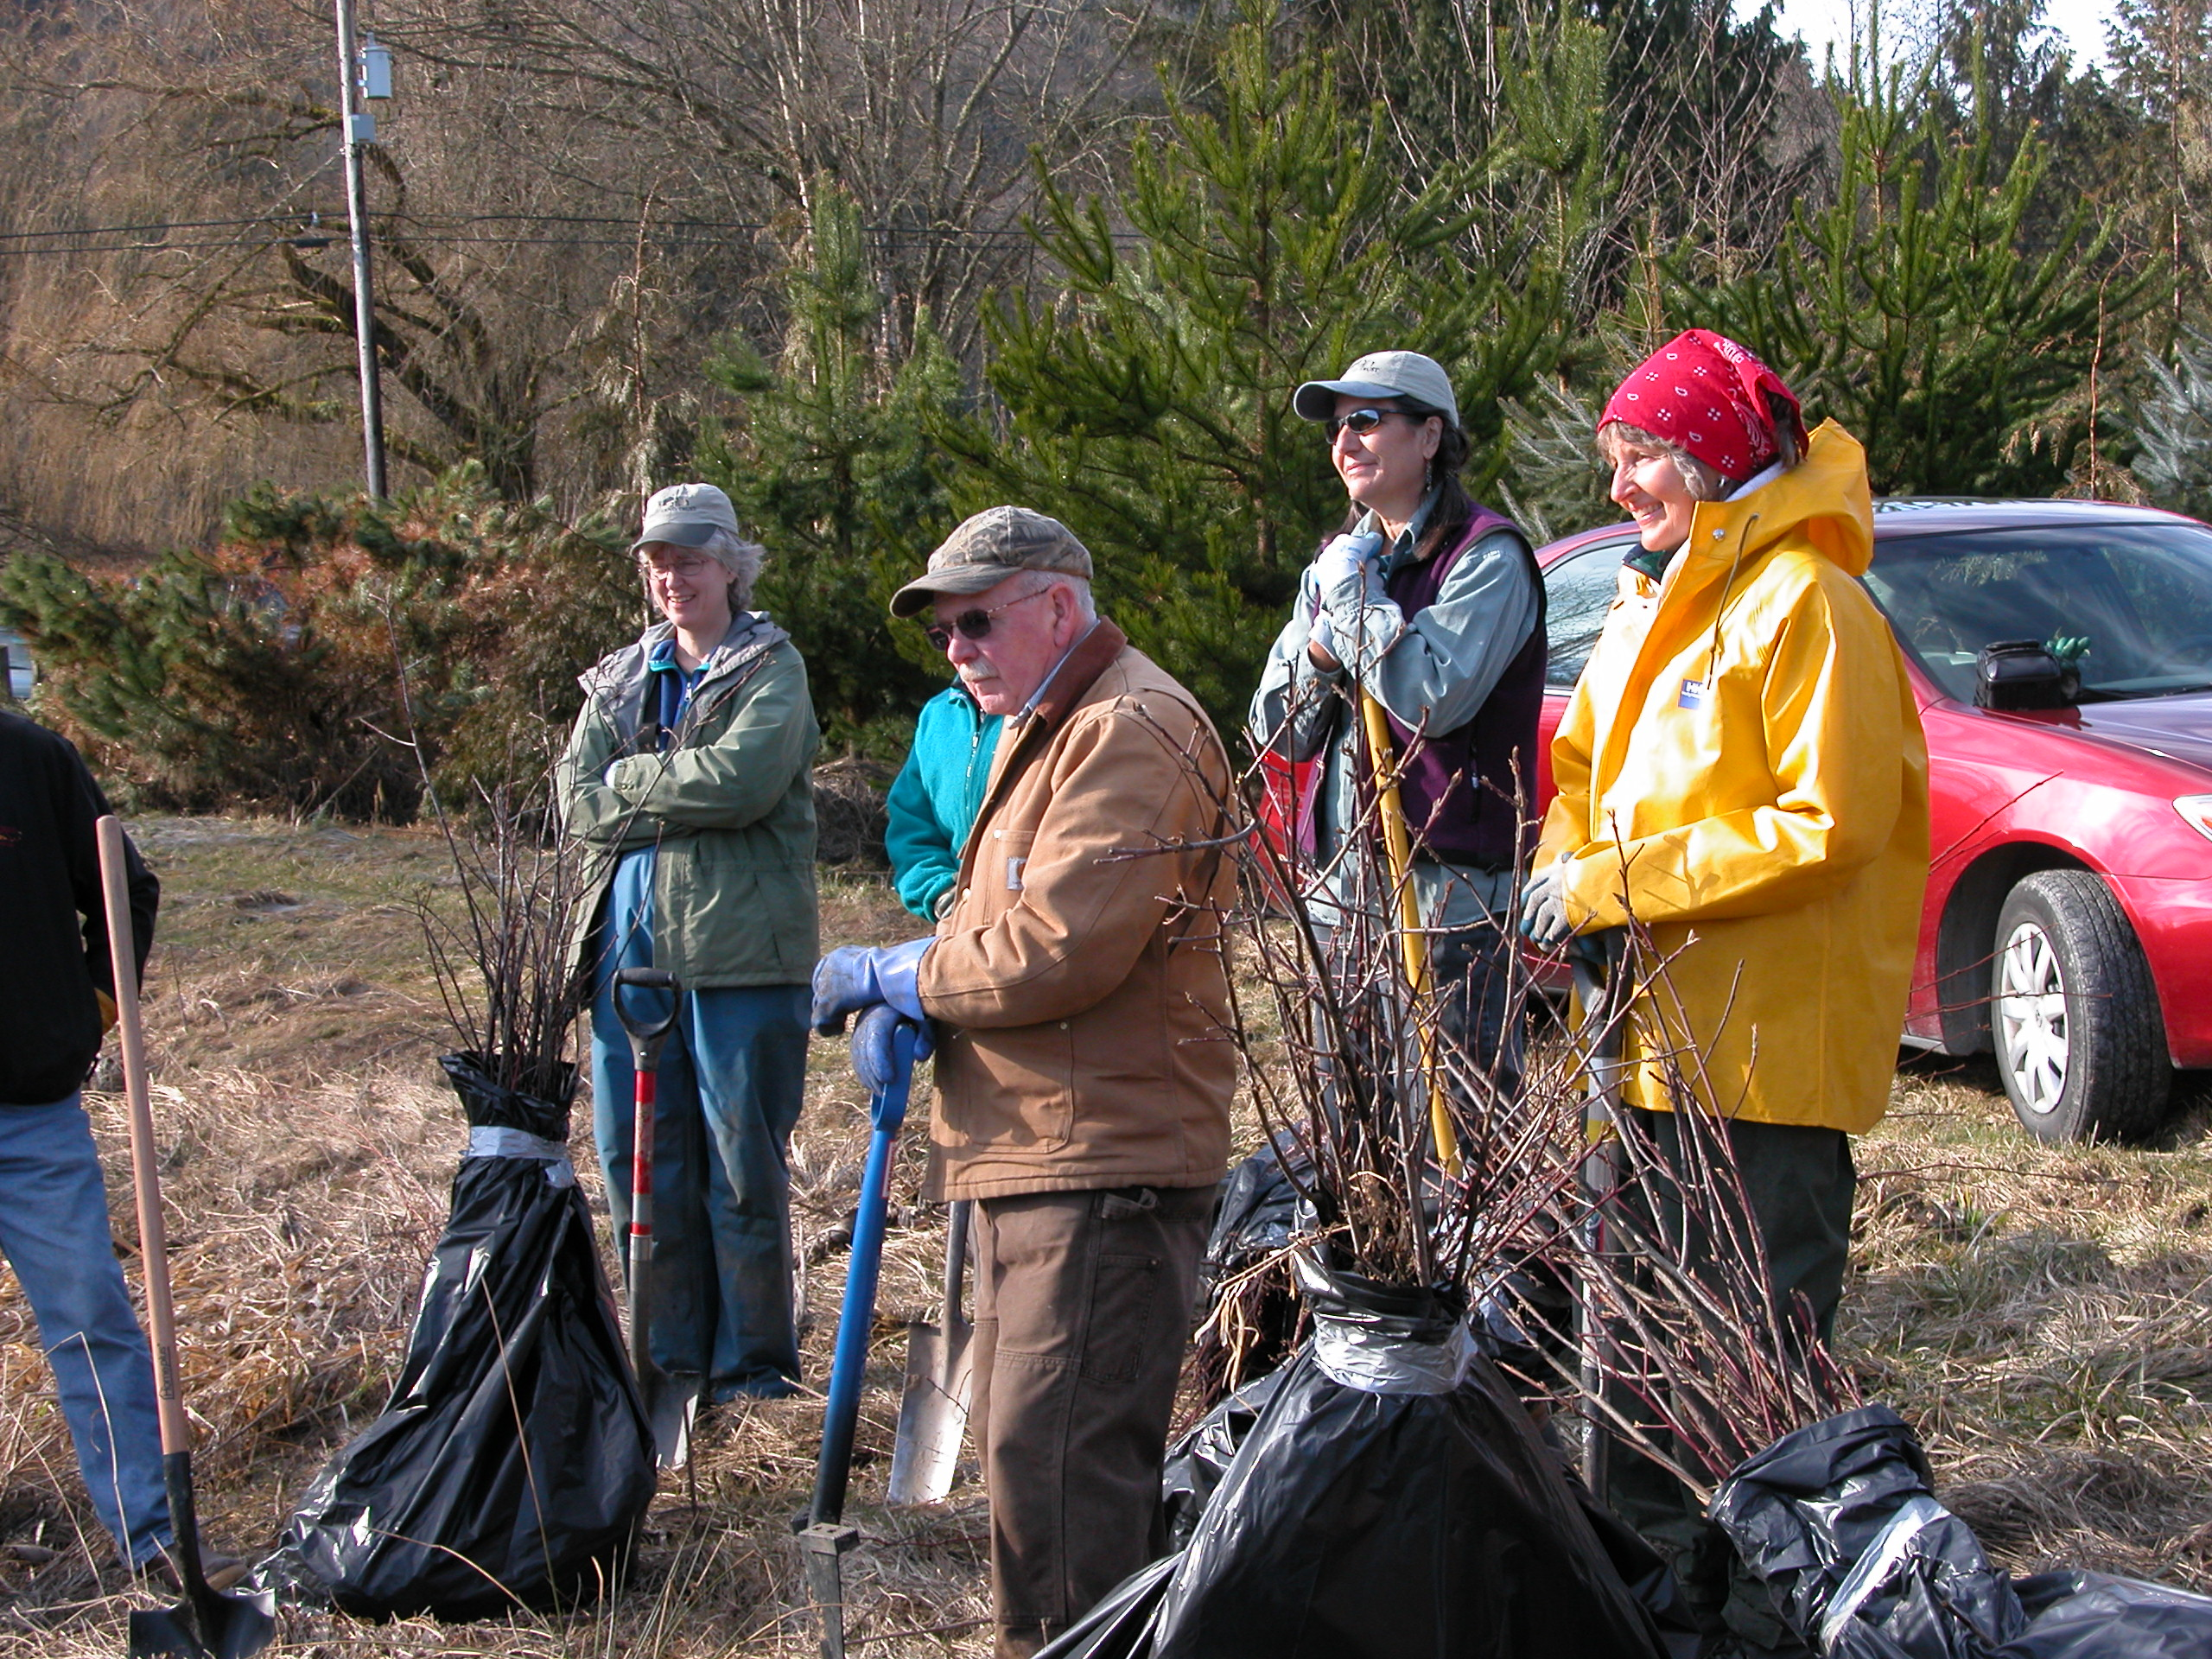 Community members participate in tree planting restoration project at Tope Ryan Conservation Area. Photograph credit: Skagit Land Trust staff.